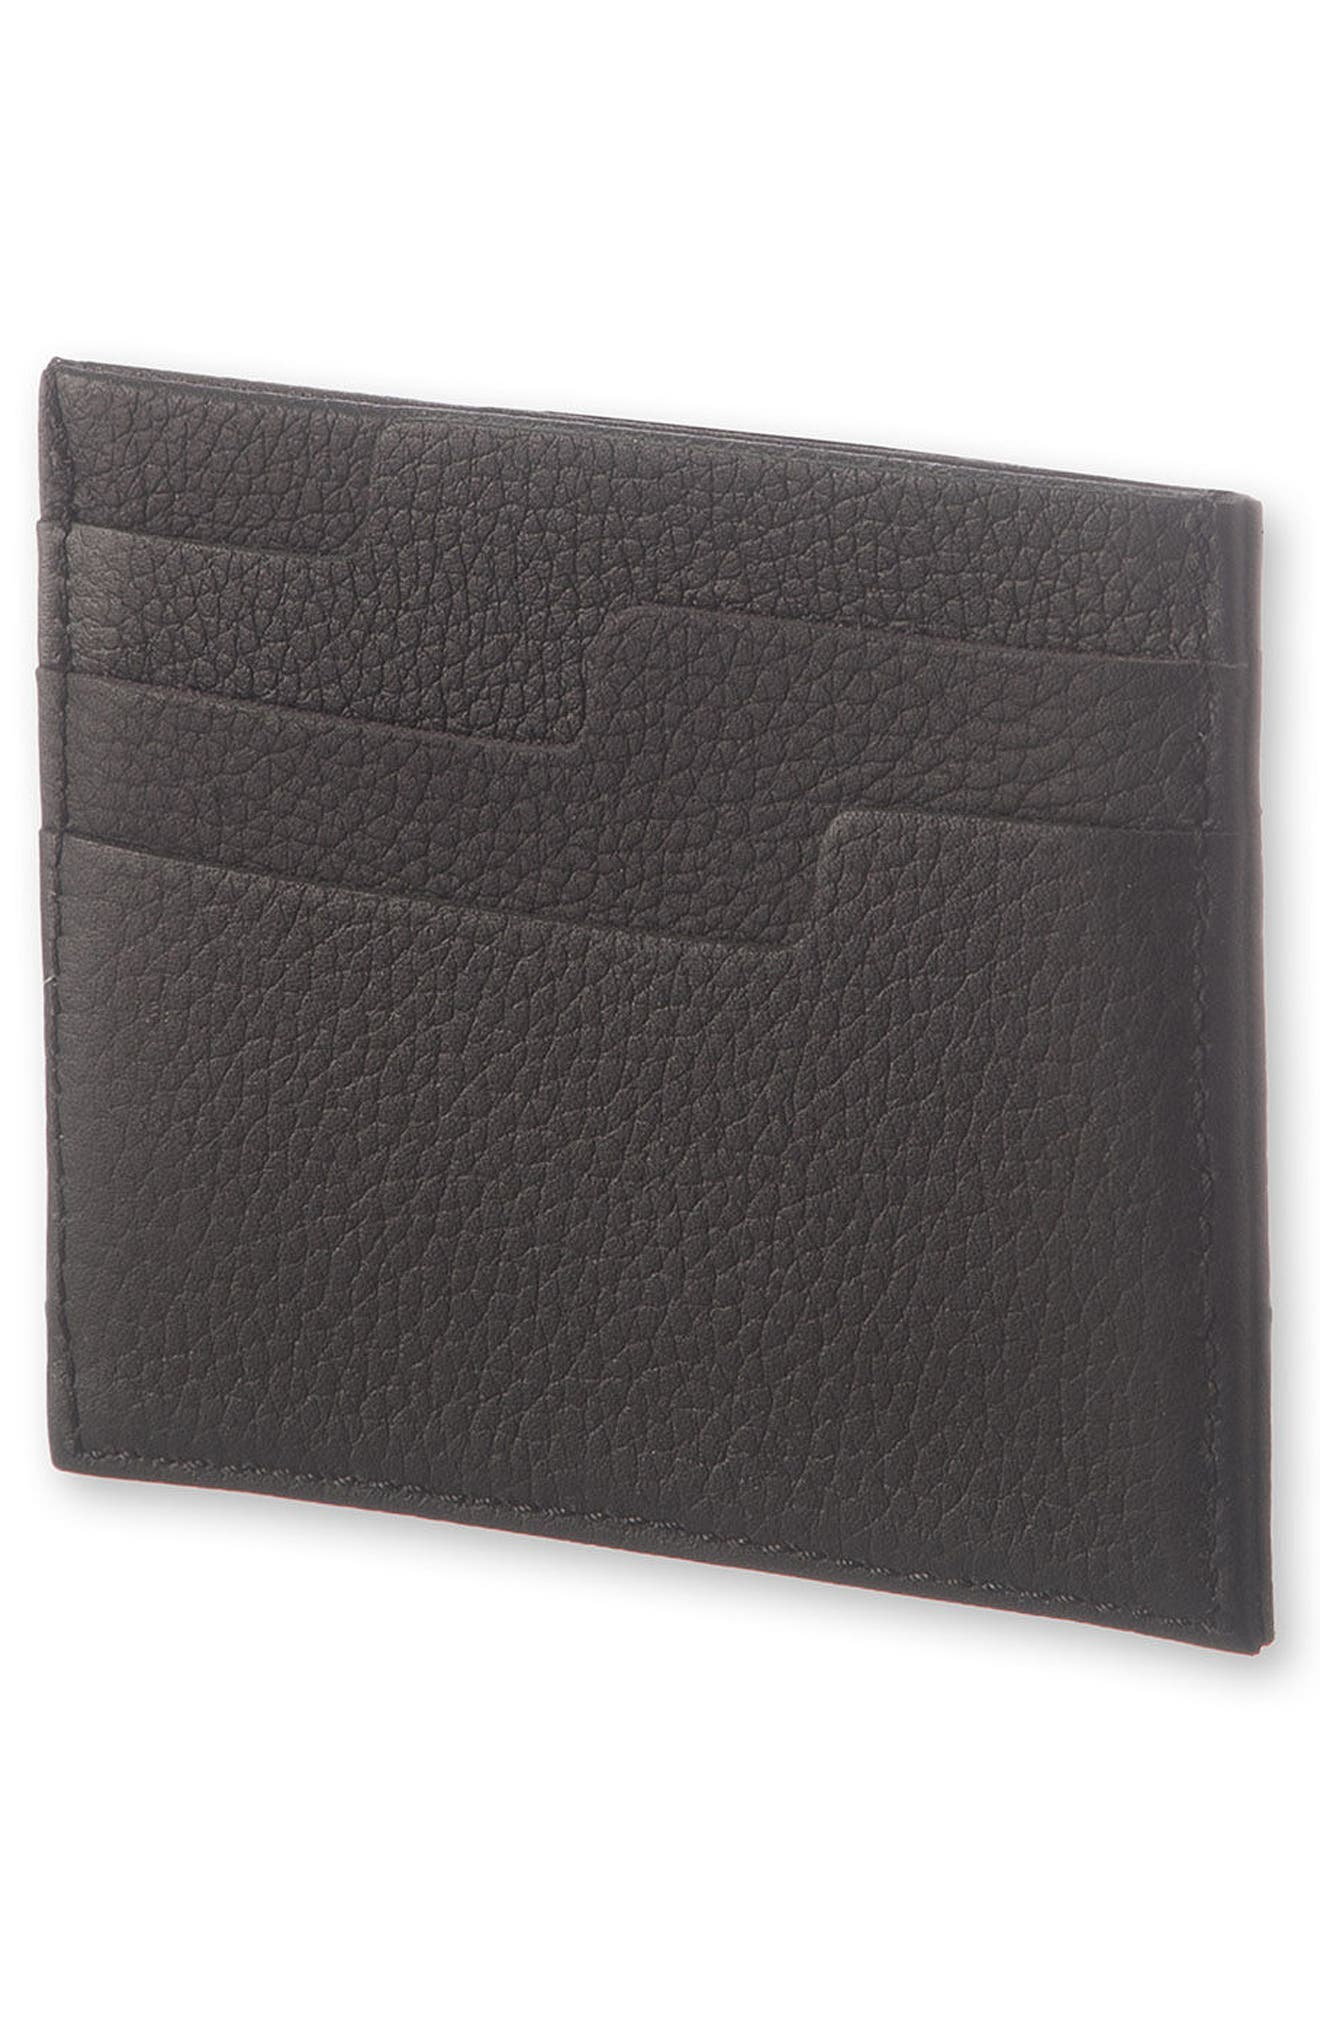 Moleskin Lineage Leather Card Case,                             Alternate thumbnail 4, color,                             Black